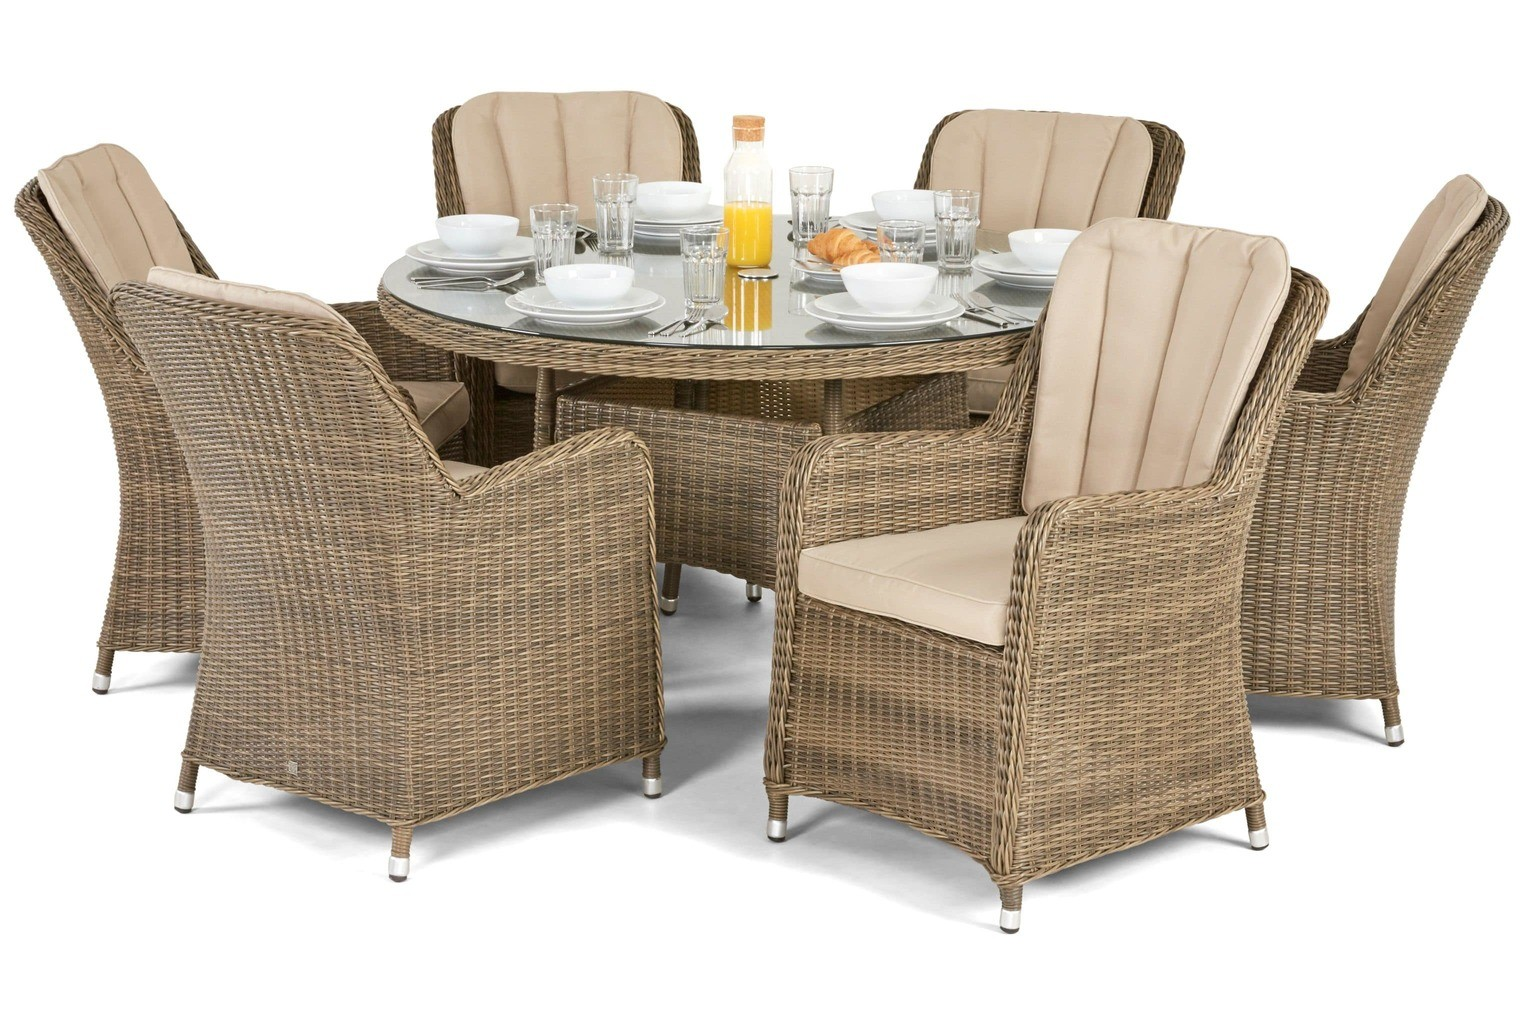 Maze Rattan Winchester Venice 6 Seater Garden Furniture Set